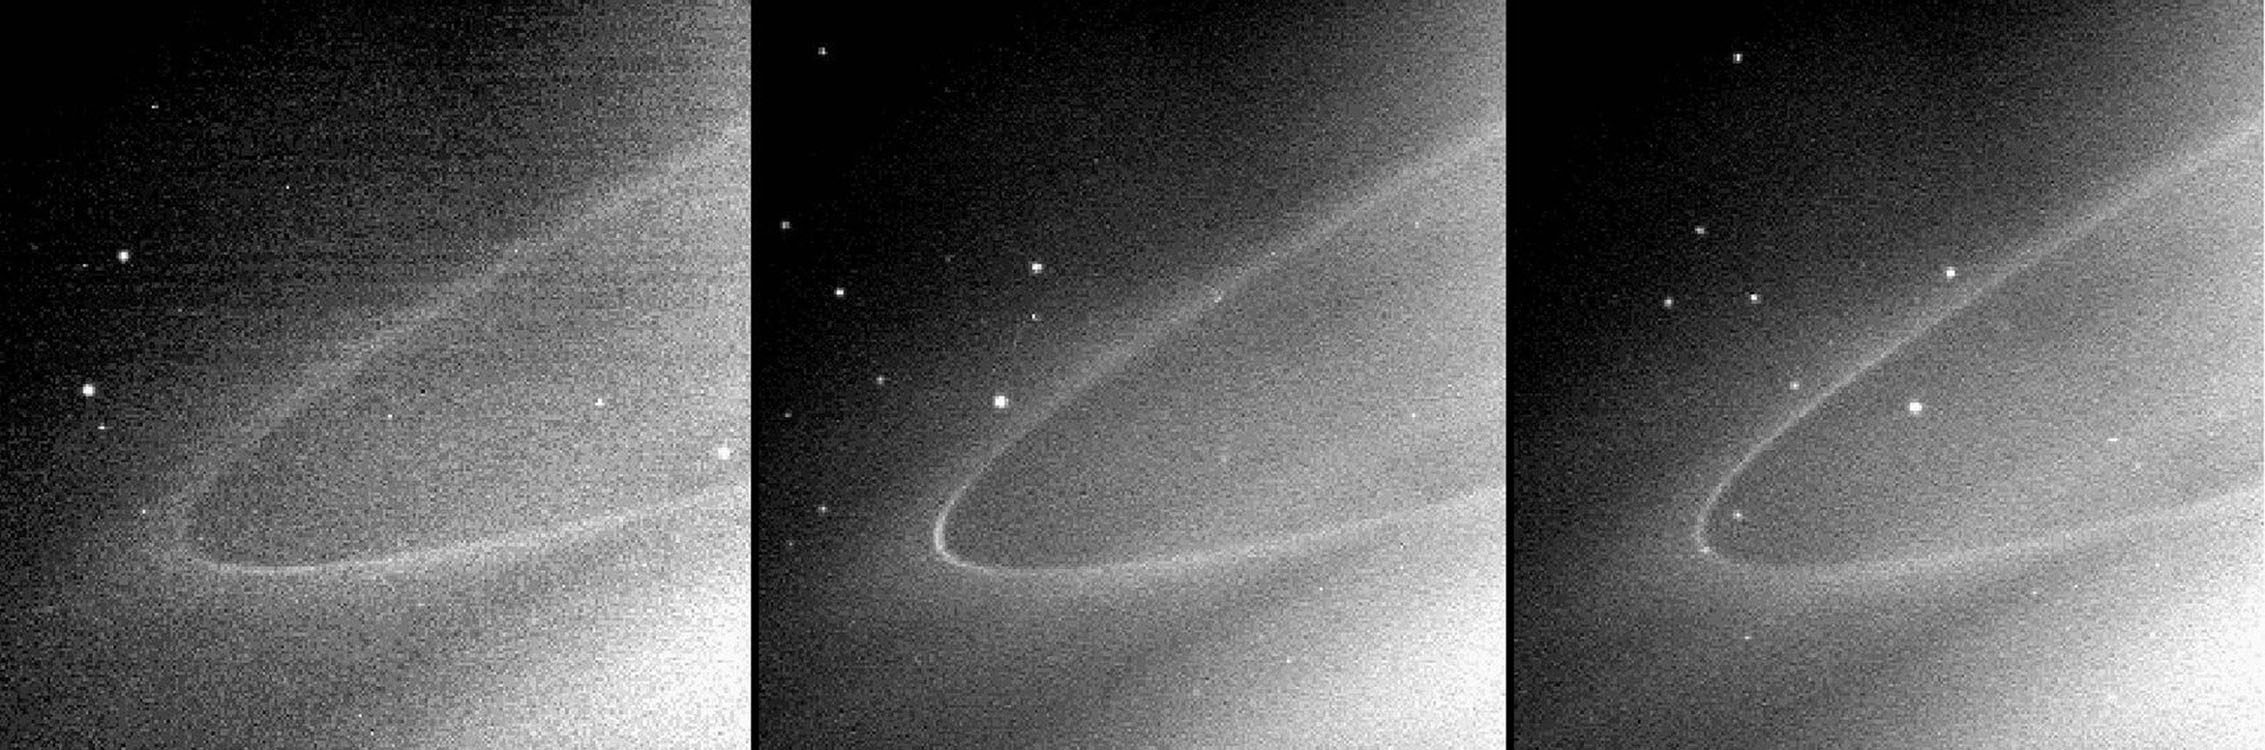 This sequence of images from NASA's Cassini spacecraft shows a faint arc of material in Saturn's G ring, a tenuous ring outside the main ring system. These images were each taken about 45 minutes apart.